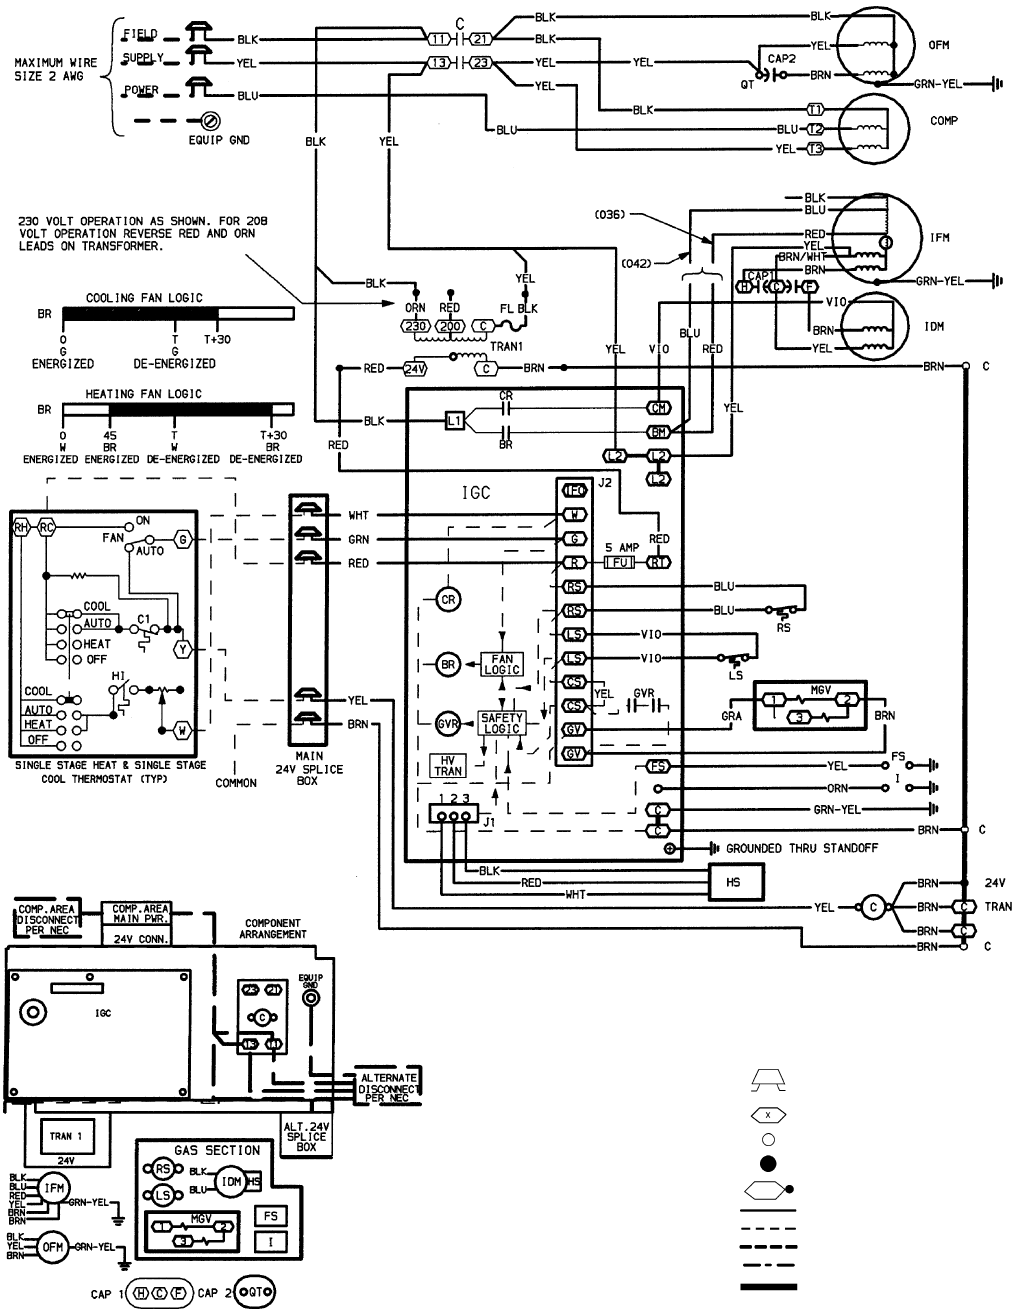 12f5562c 4eff 4259 8133 9d7867e60ebe bg20 page 32 of bryant gas heater 589a user guide manualsonline com Basic Electrical Wiring Diagrams at edmiracle.co